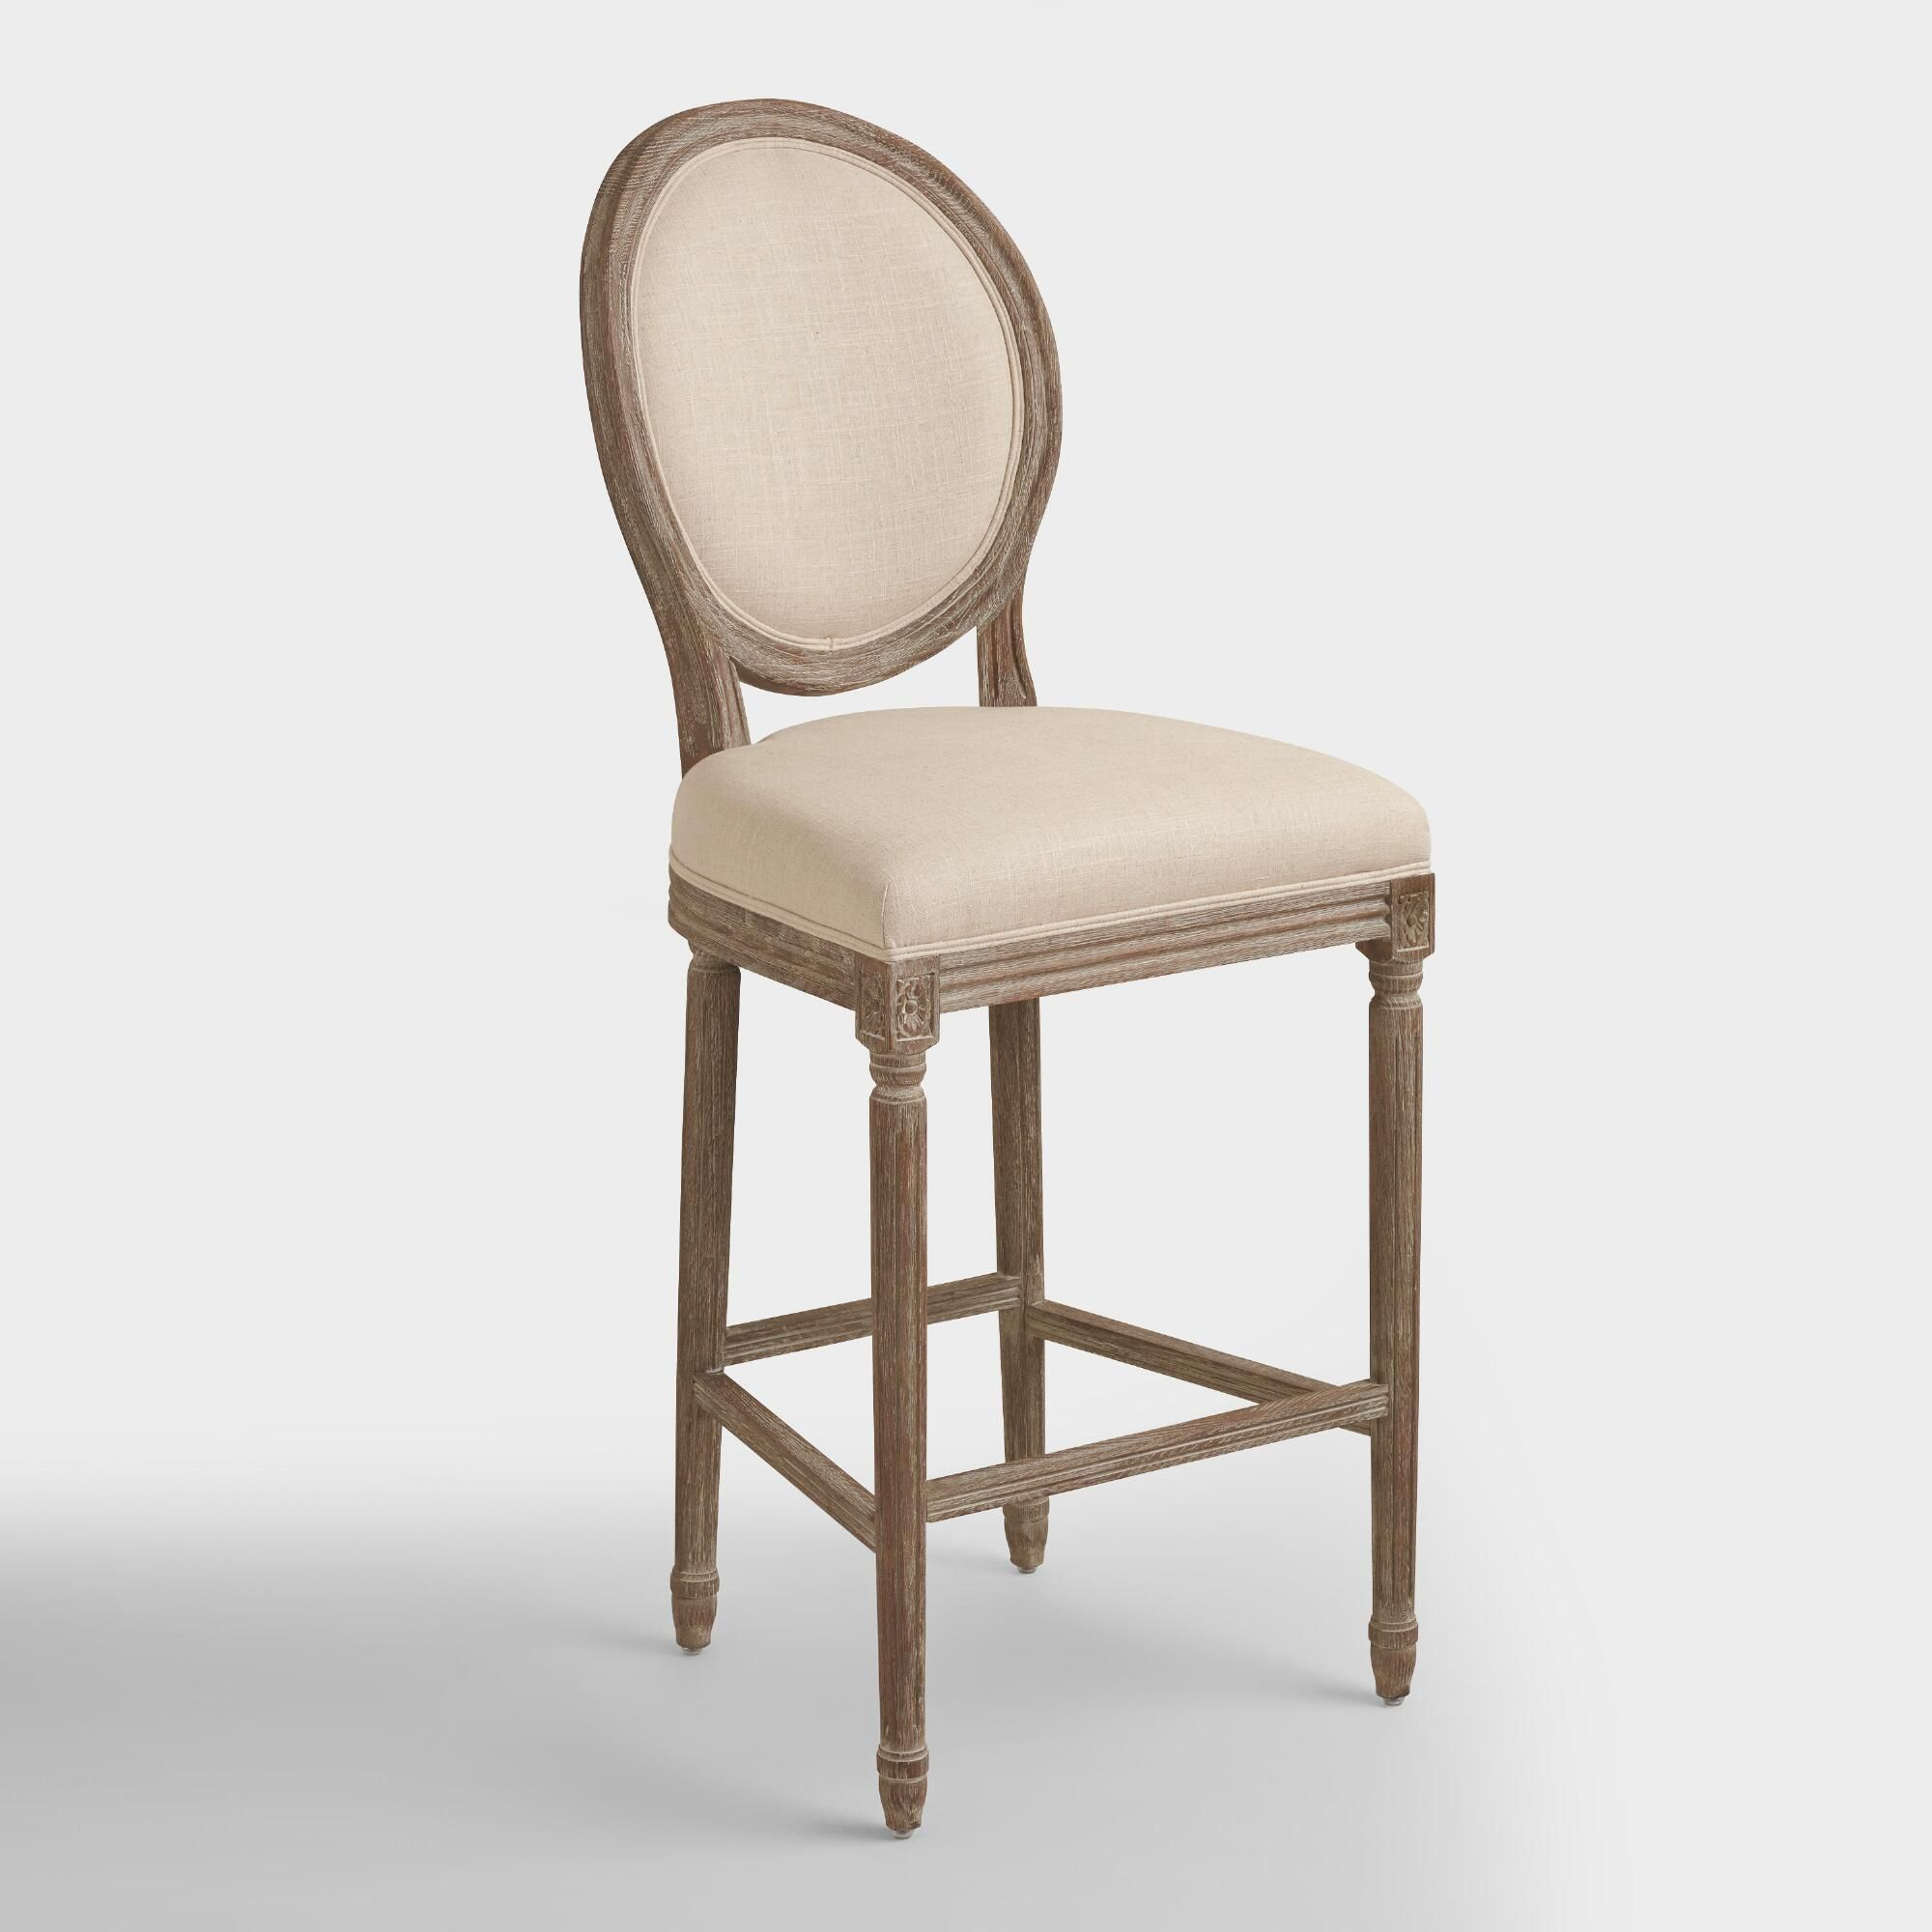 A classic with a round back silhouette our natural linen paige barstool is crafted of